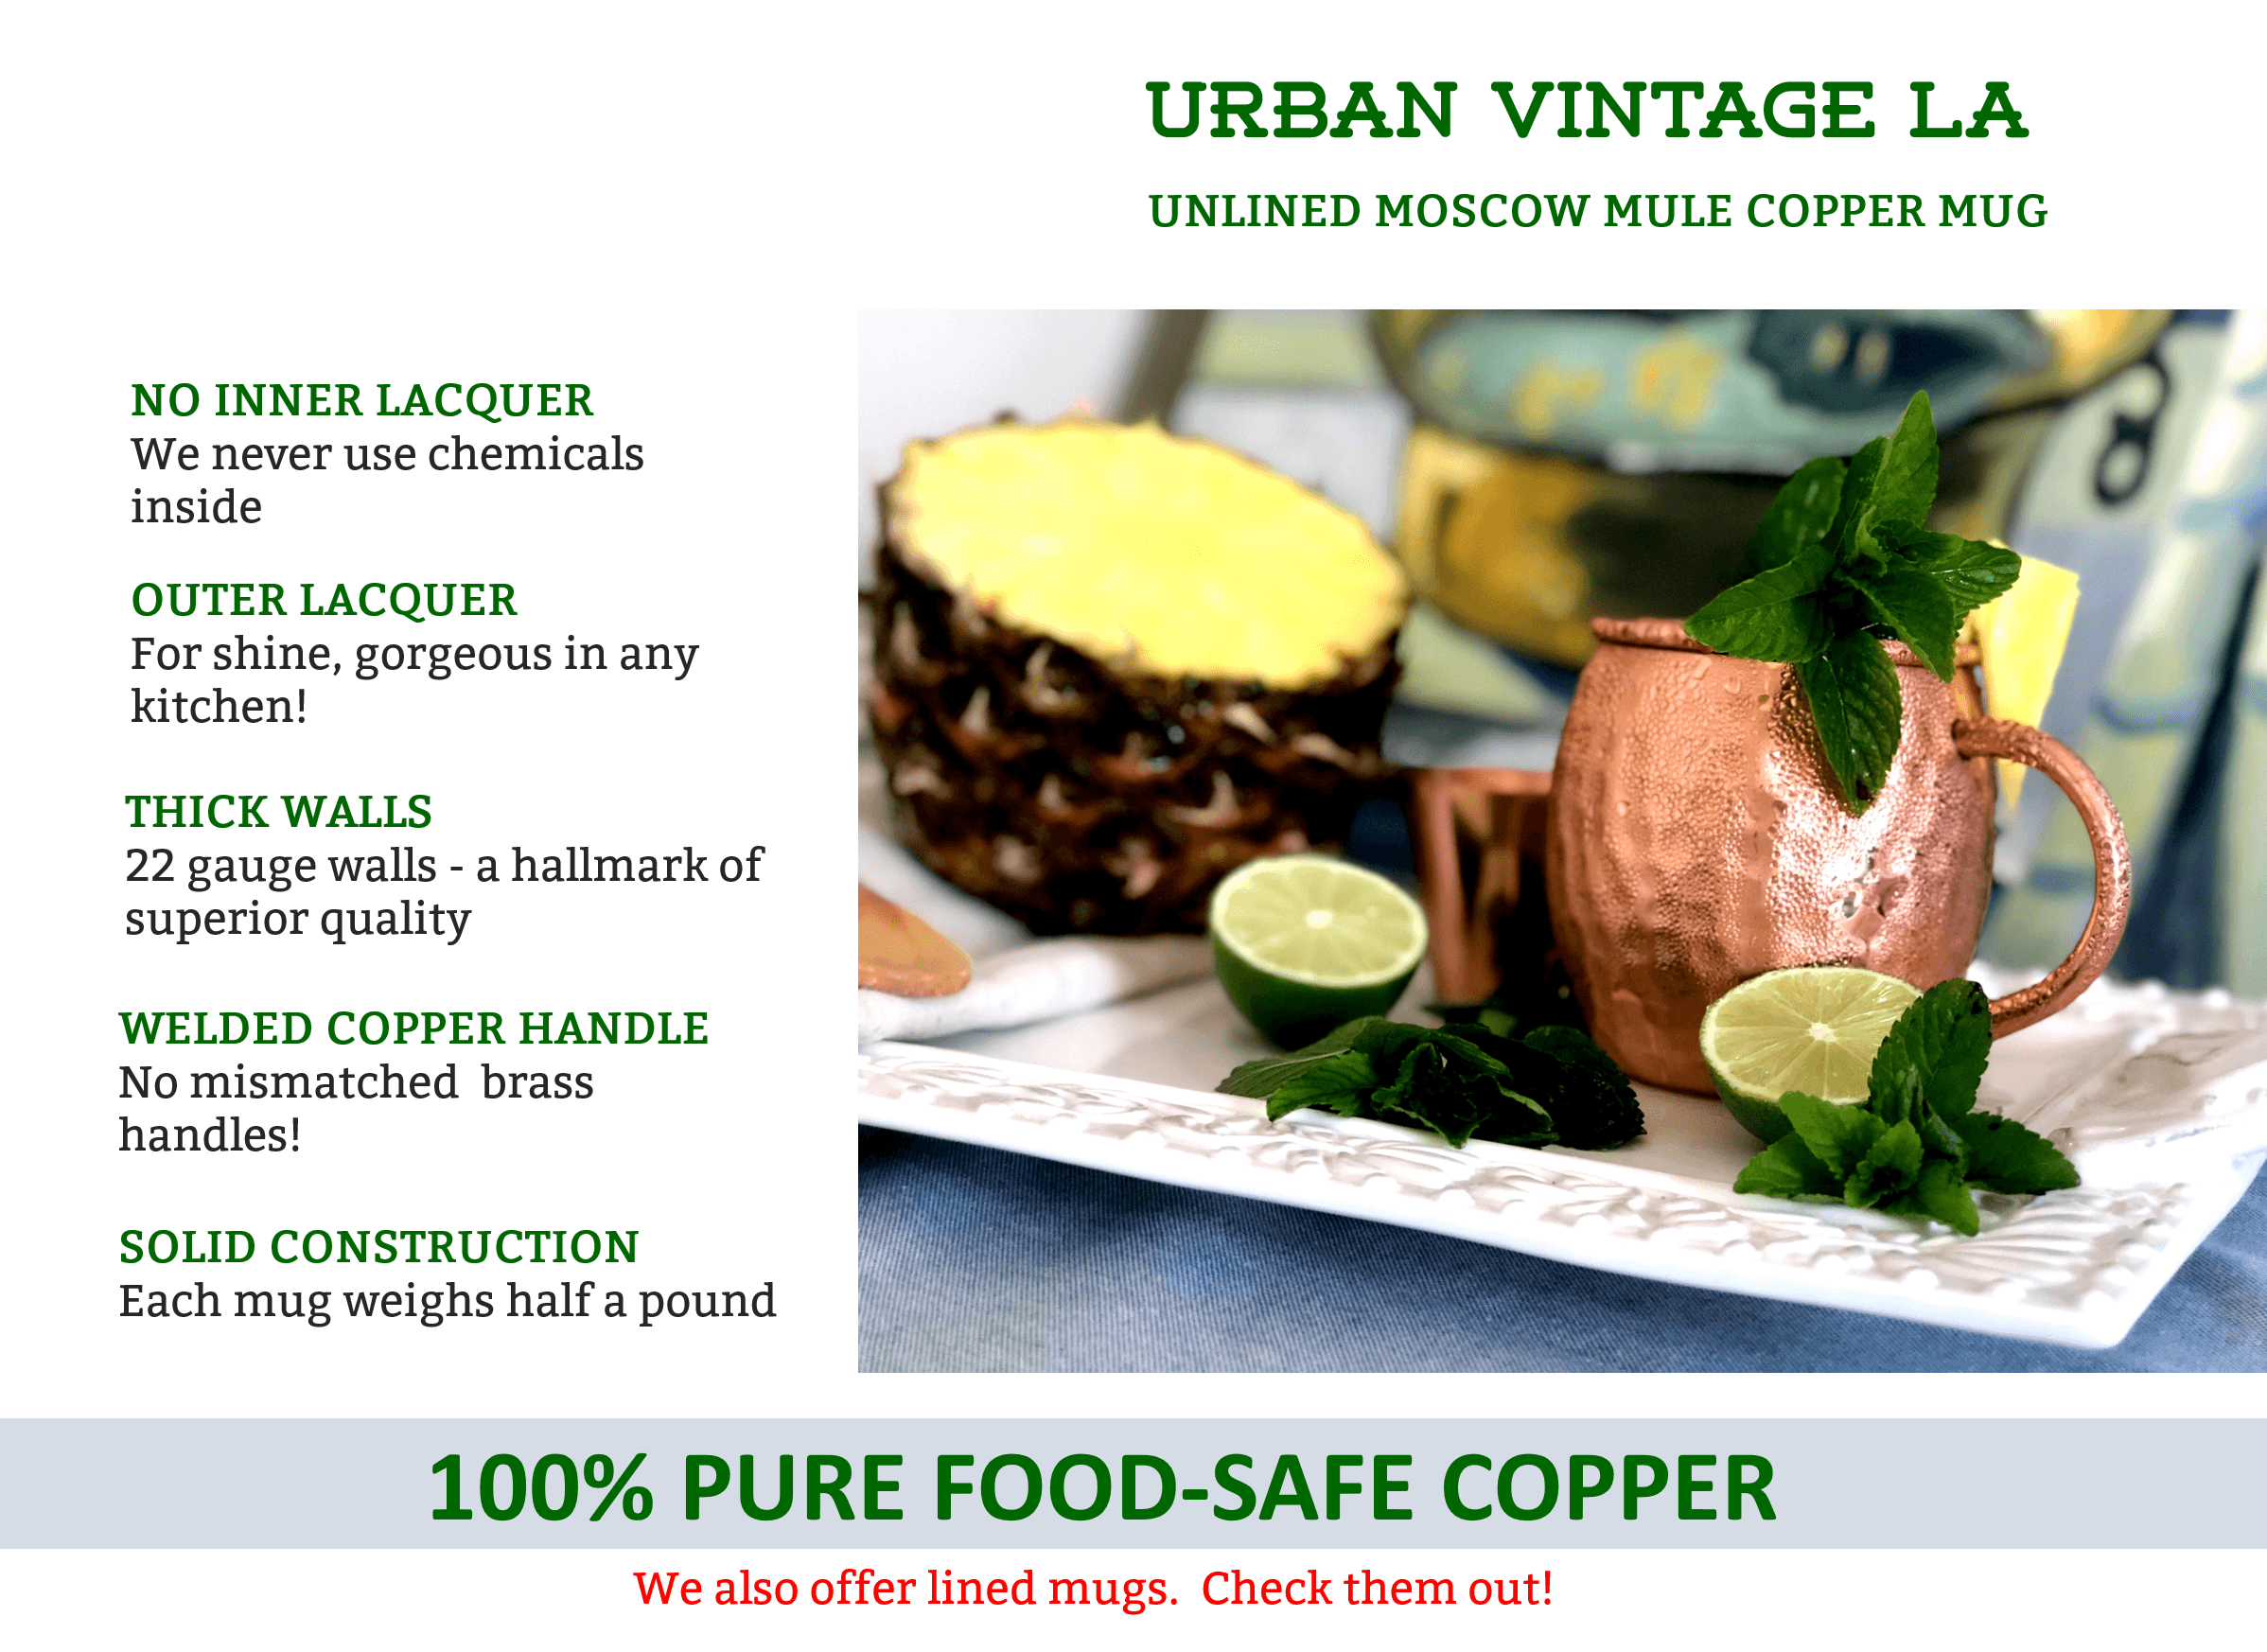 Urban Vintage LA Moscow Mule Copper Mug Features Including Barrel Shape Hammered Design With Welded Solid Copper Handle and Thick 22 Gauge Construction